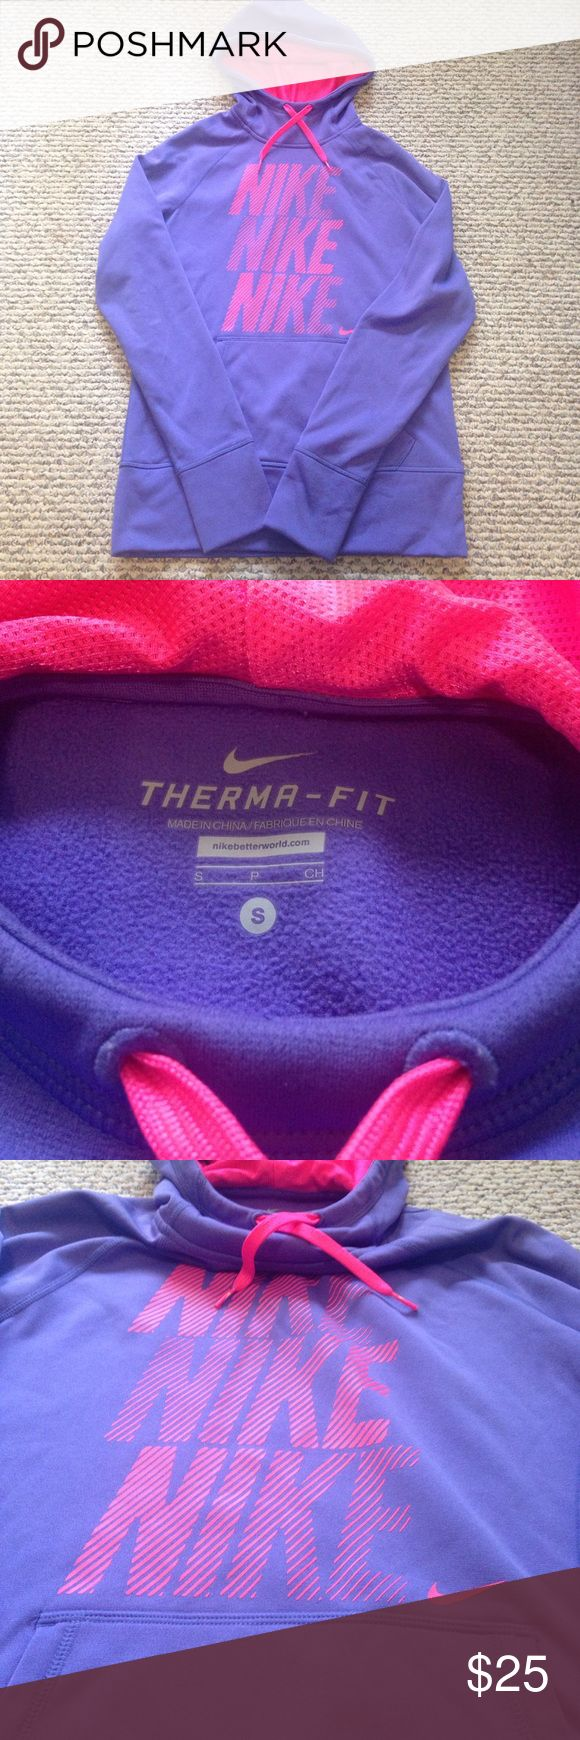 Nike hoodie (women's) Pink and light purple women's Therma fit Nike hoodie size small. Has holes for your fingers and is in excellent gently used condition! Nike Tops Sweatshirts & Hoodies